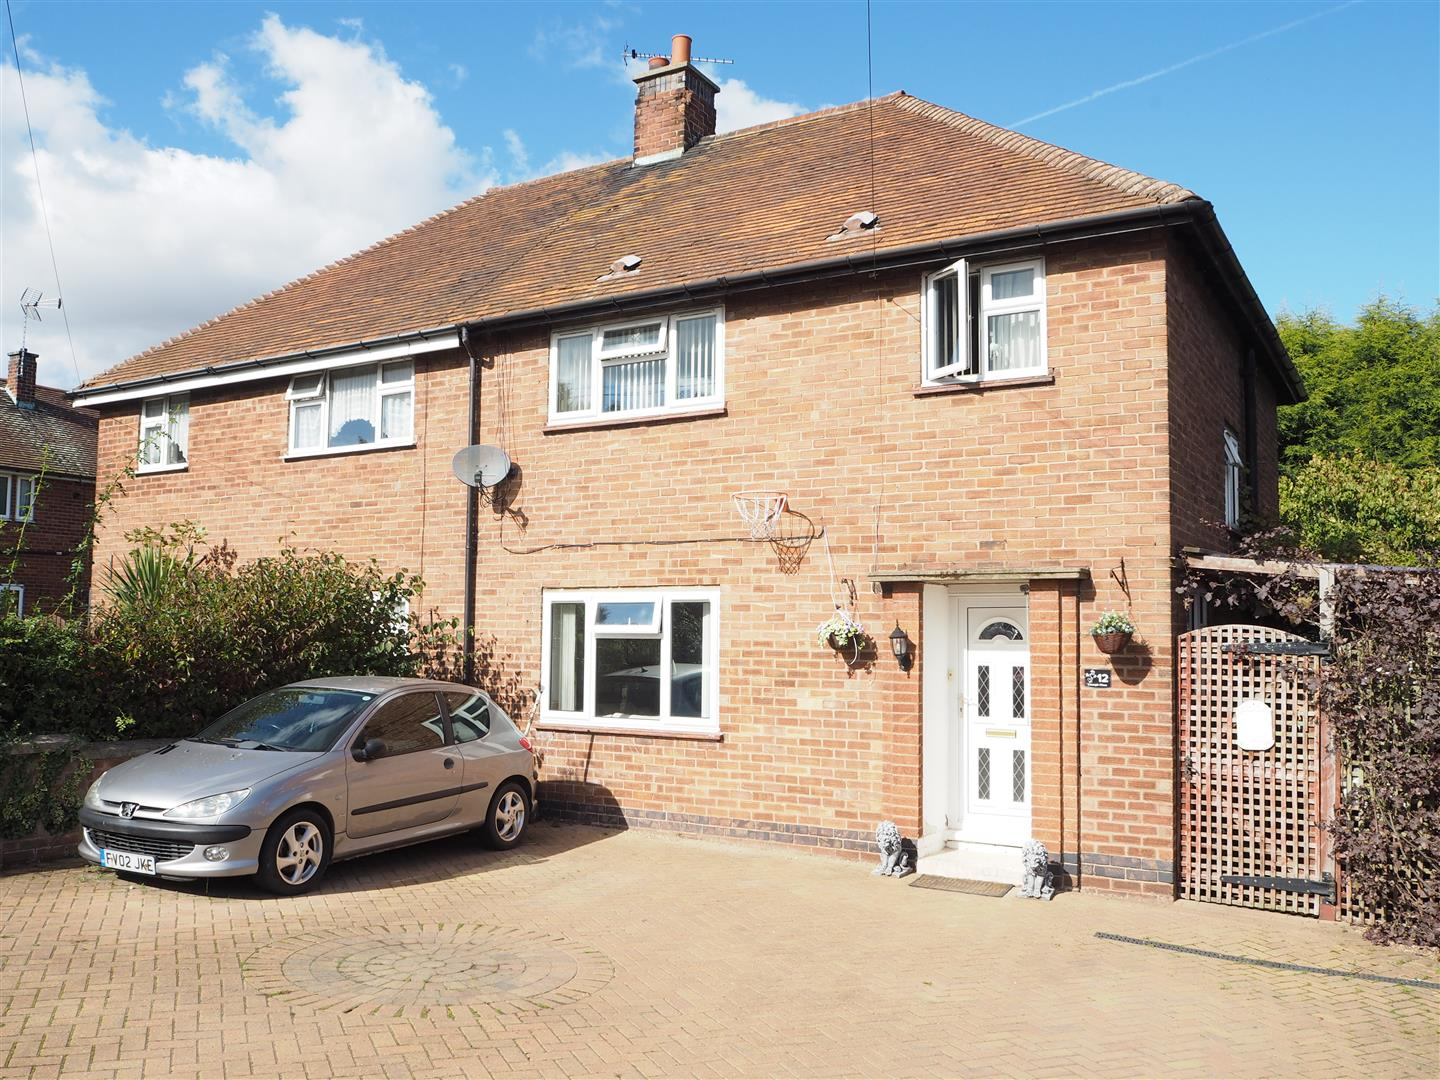 3 Bedroom Property For Sale In Triumph Close Eakring Newark